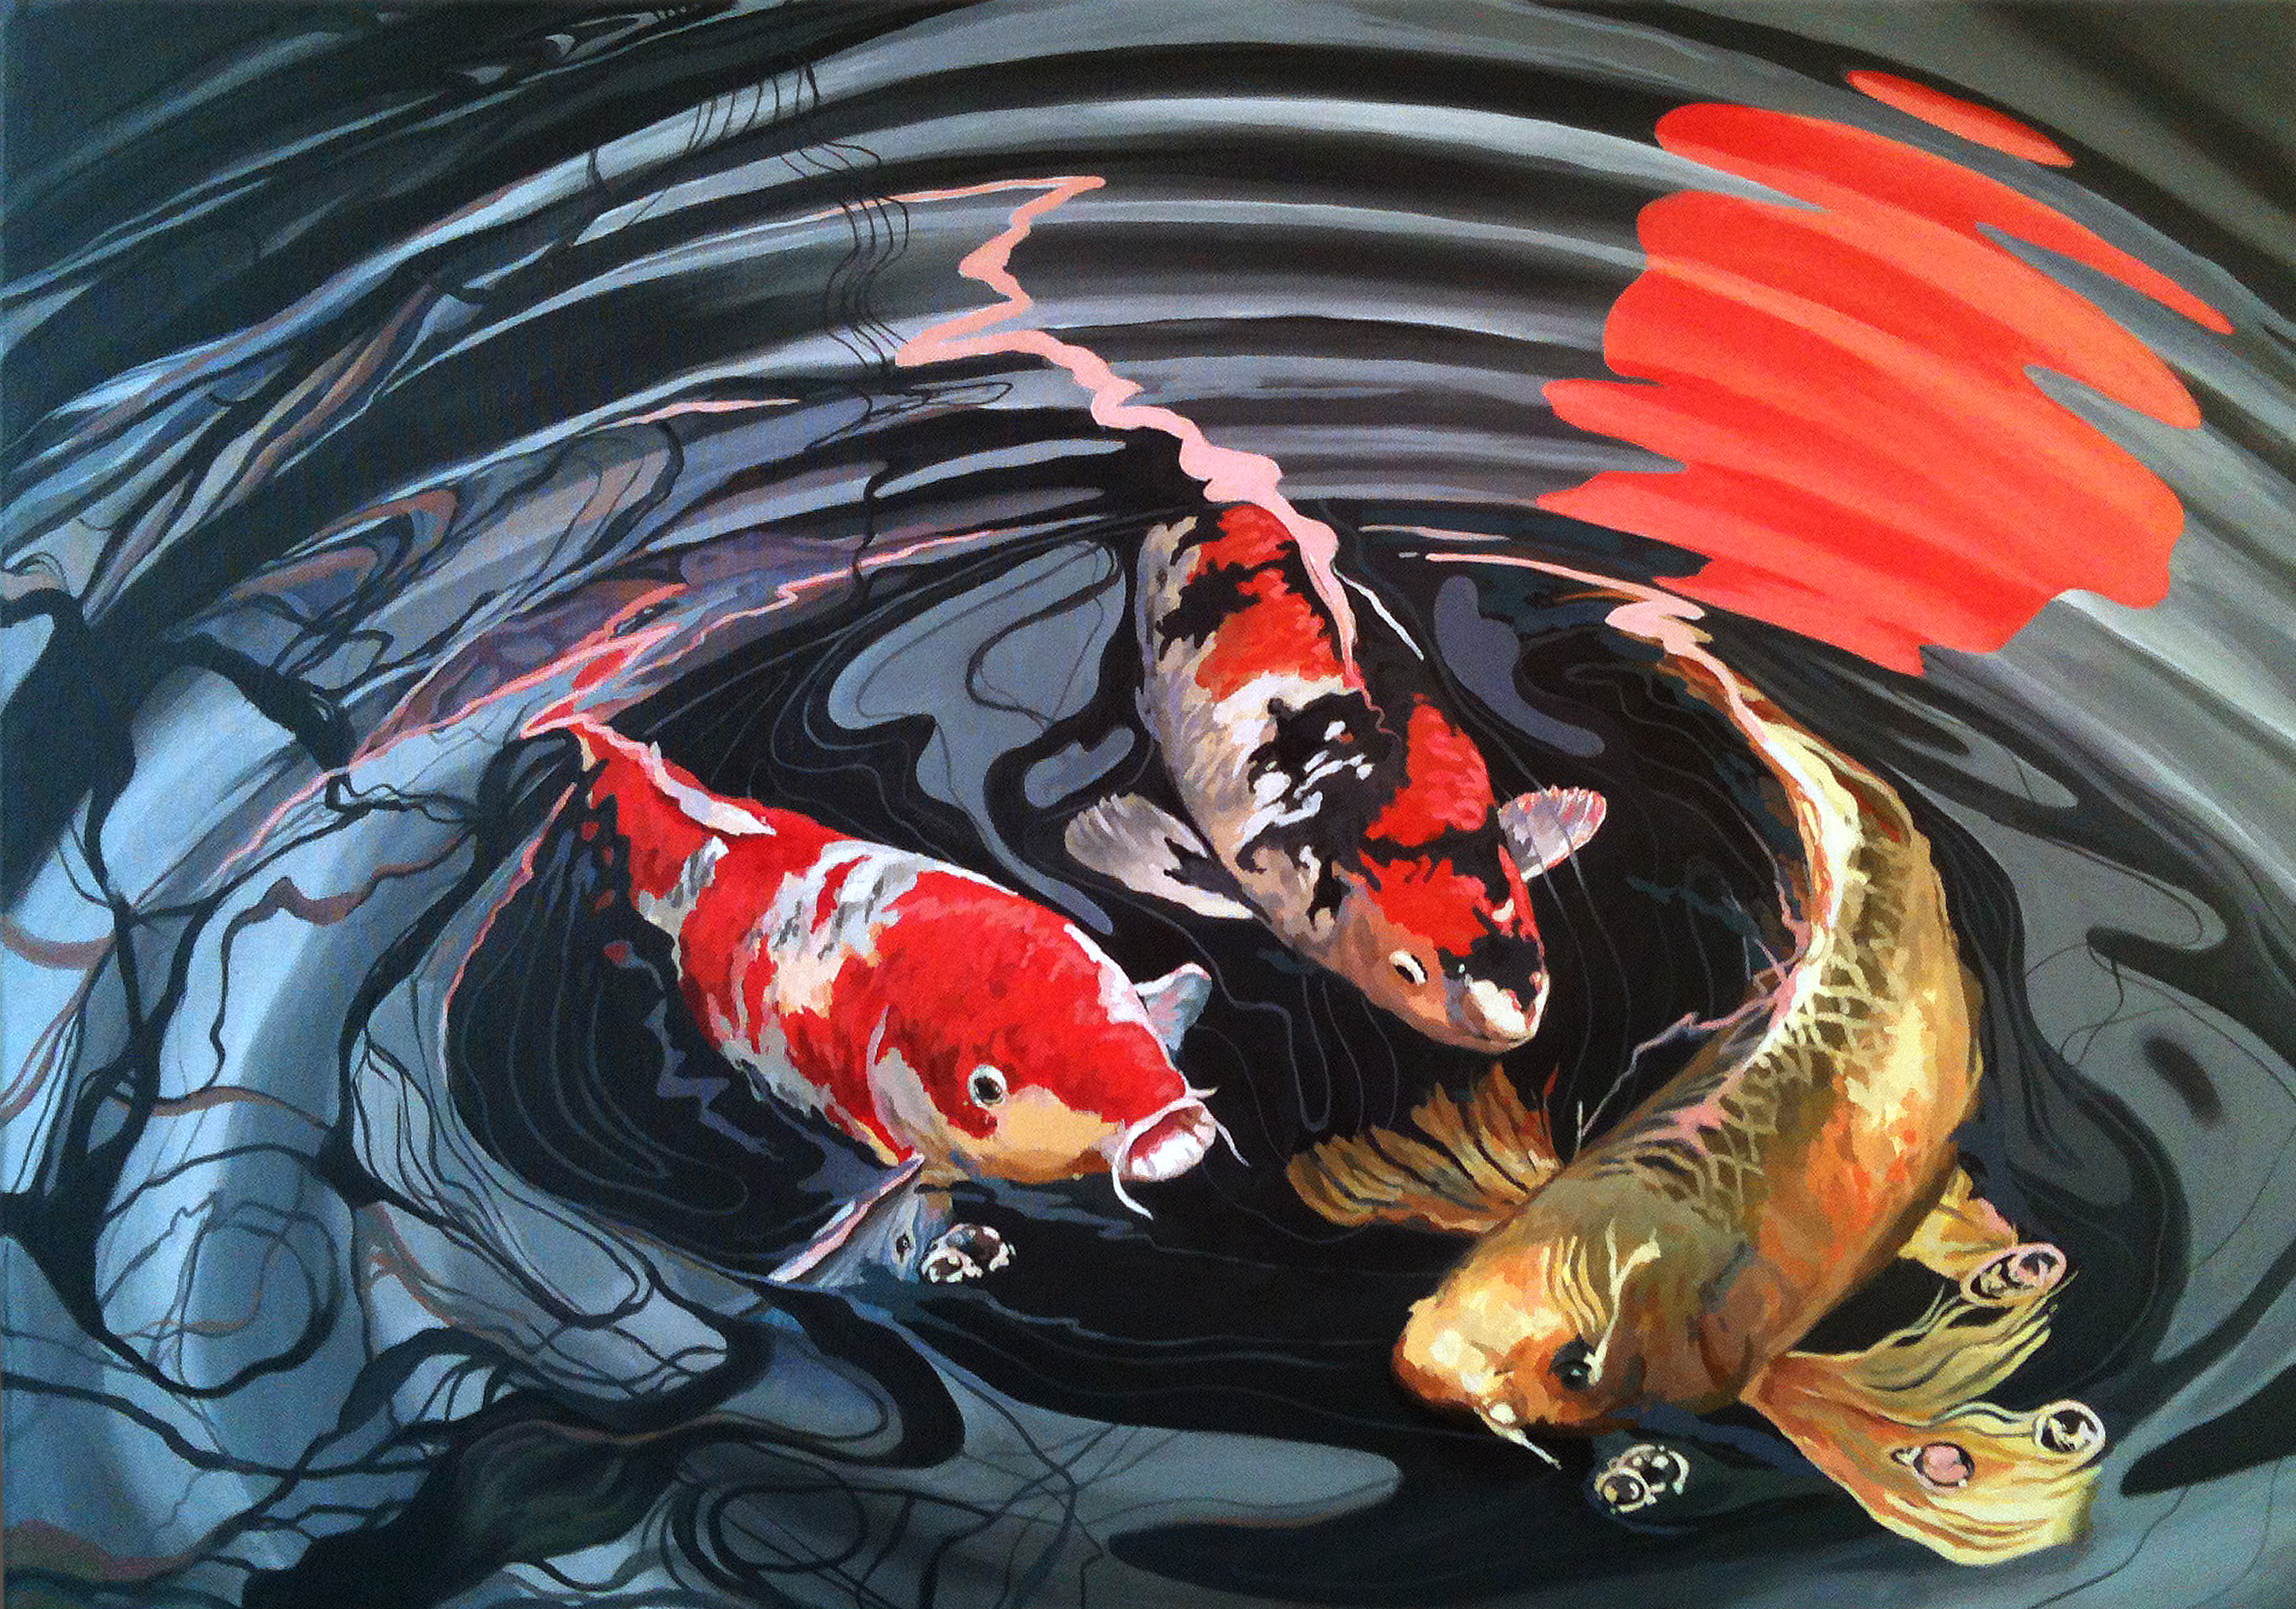 Fran Halpin. Coy Carp series. Acrylic on canvas